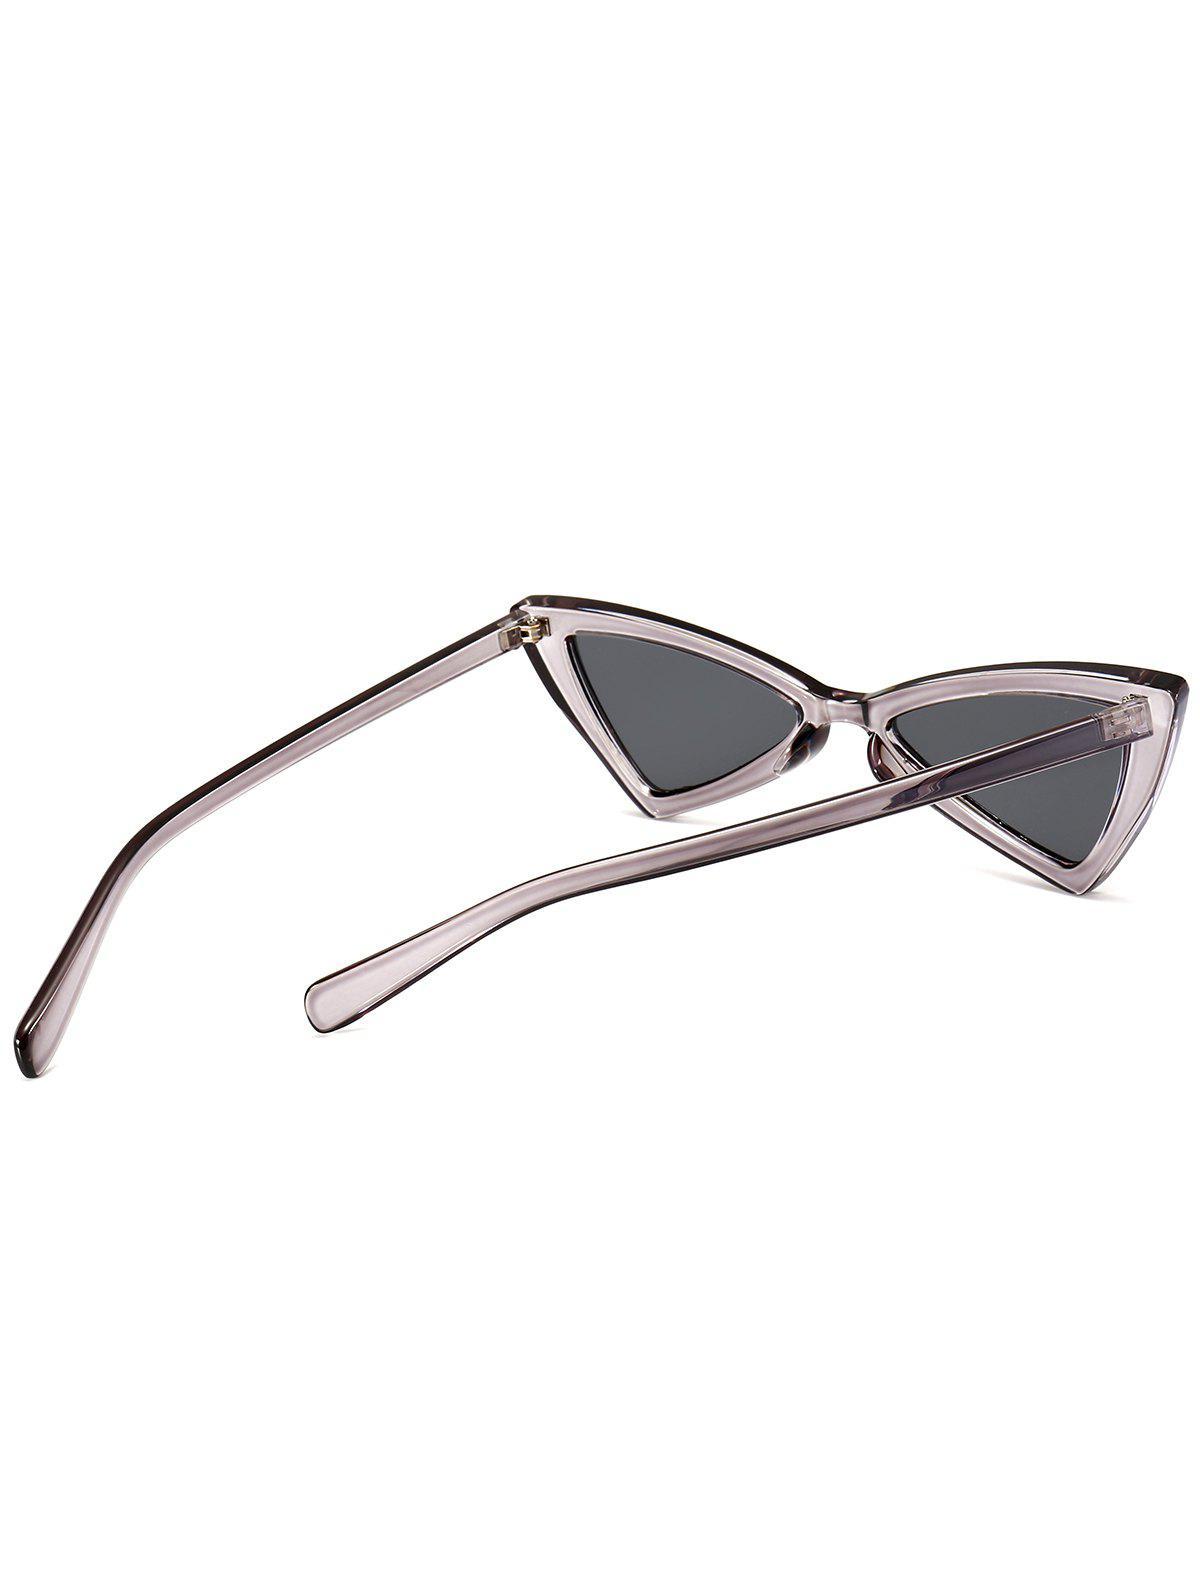 Irregular Butterfly Full Frame Embellished Sunglasses - TRANSPARENT GRAY